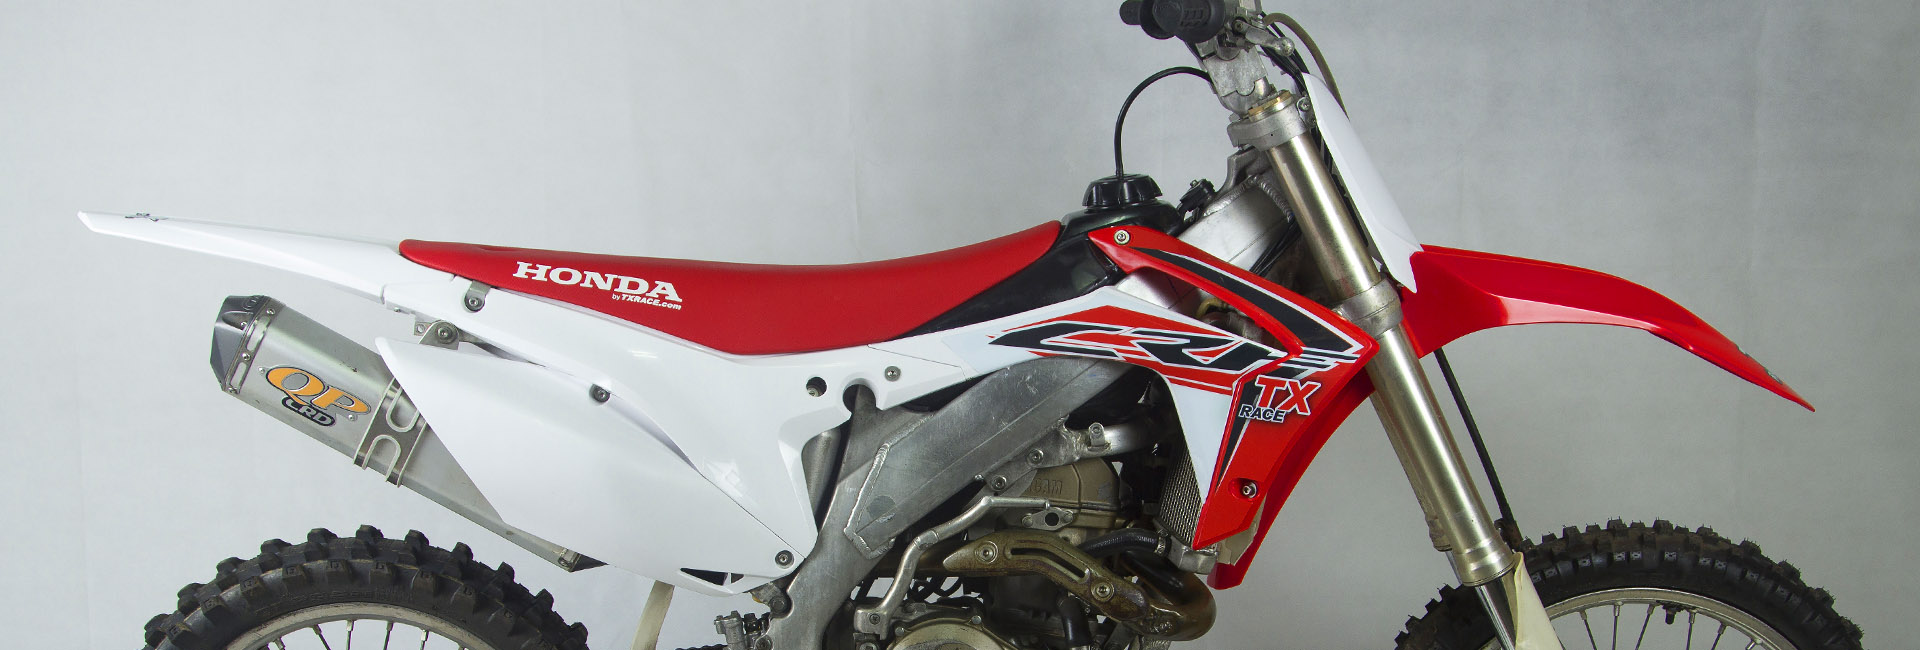 TX RACE™ Restyle Plastic Kit® for Honda CRF450R 2002-2004